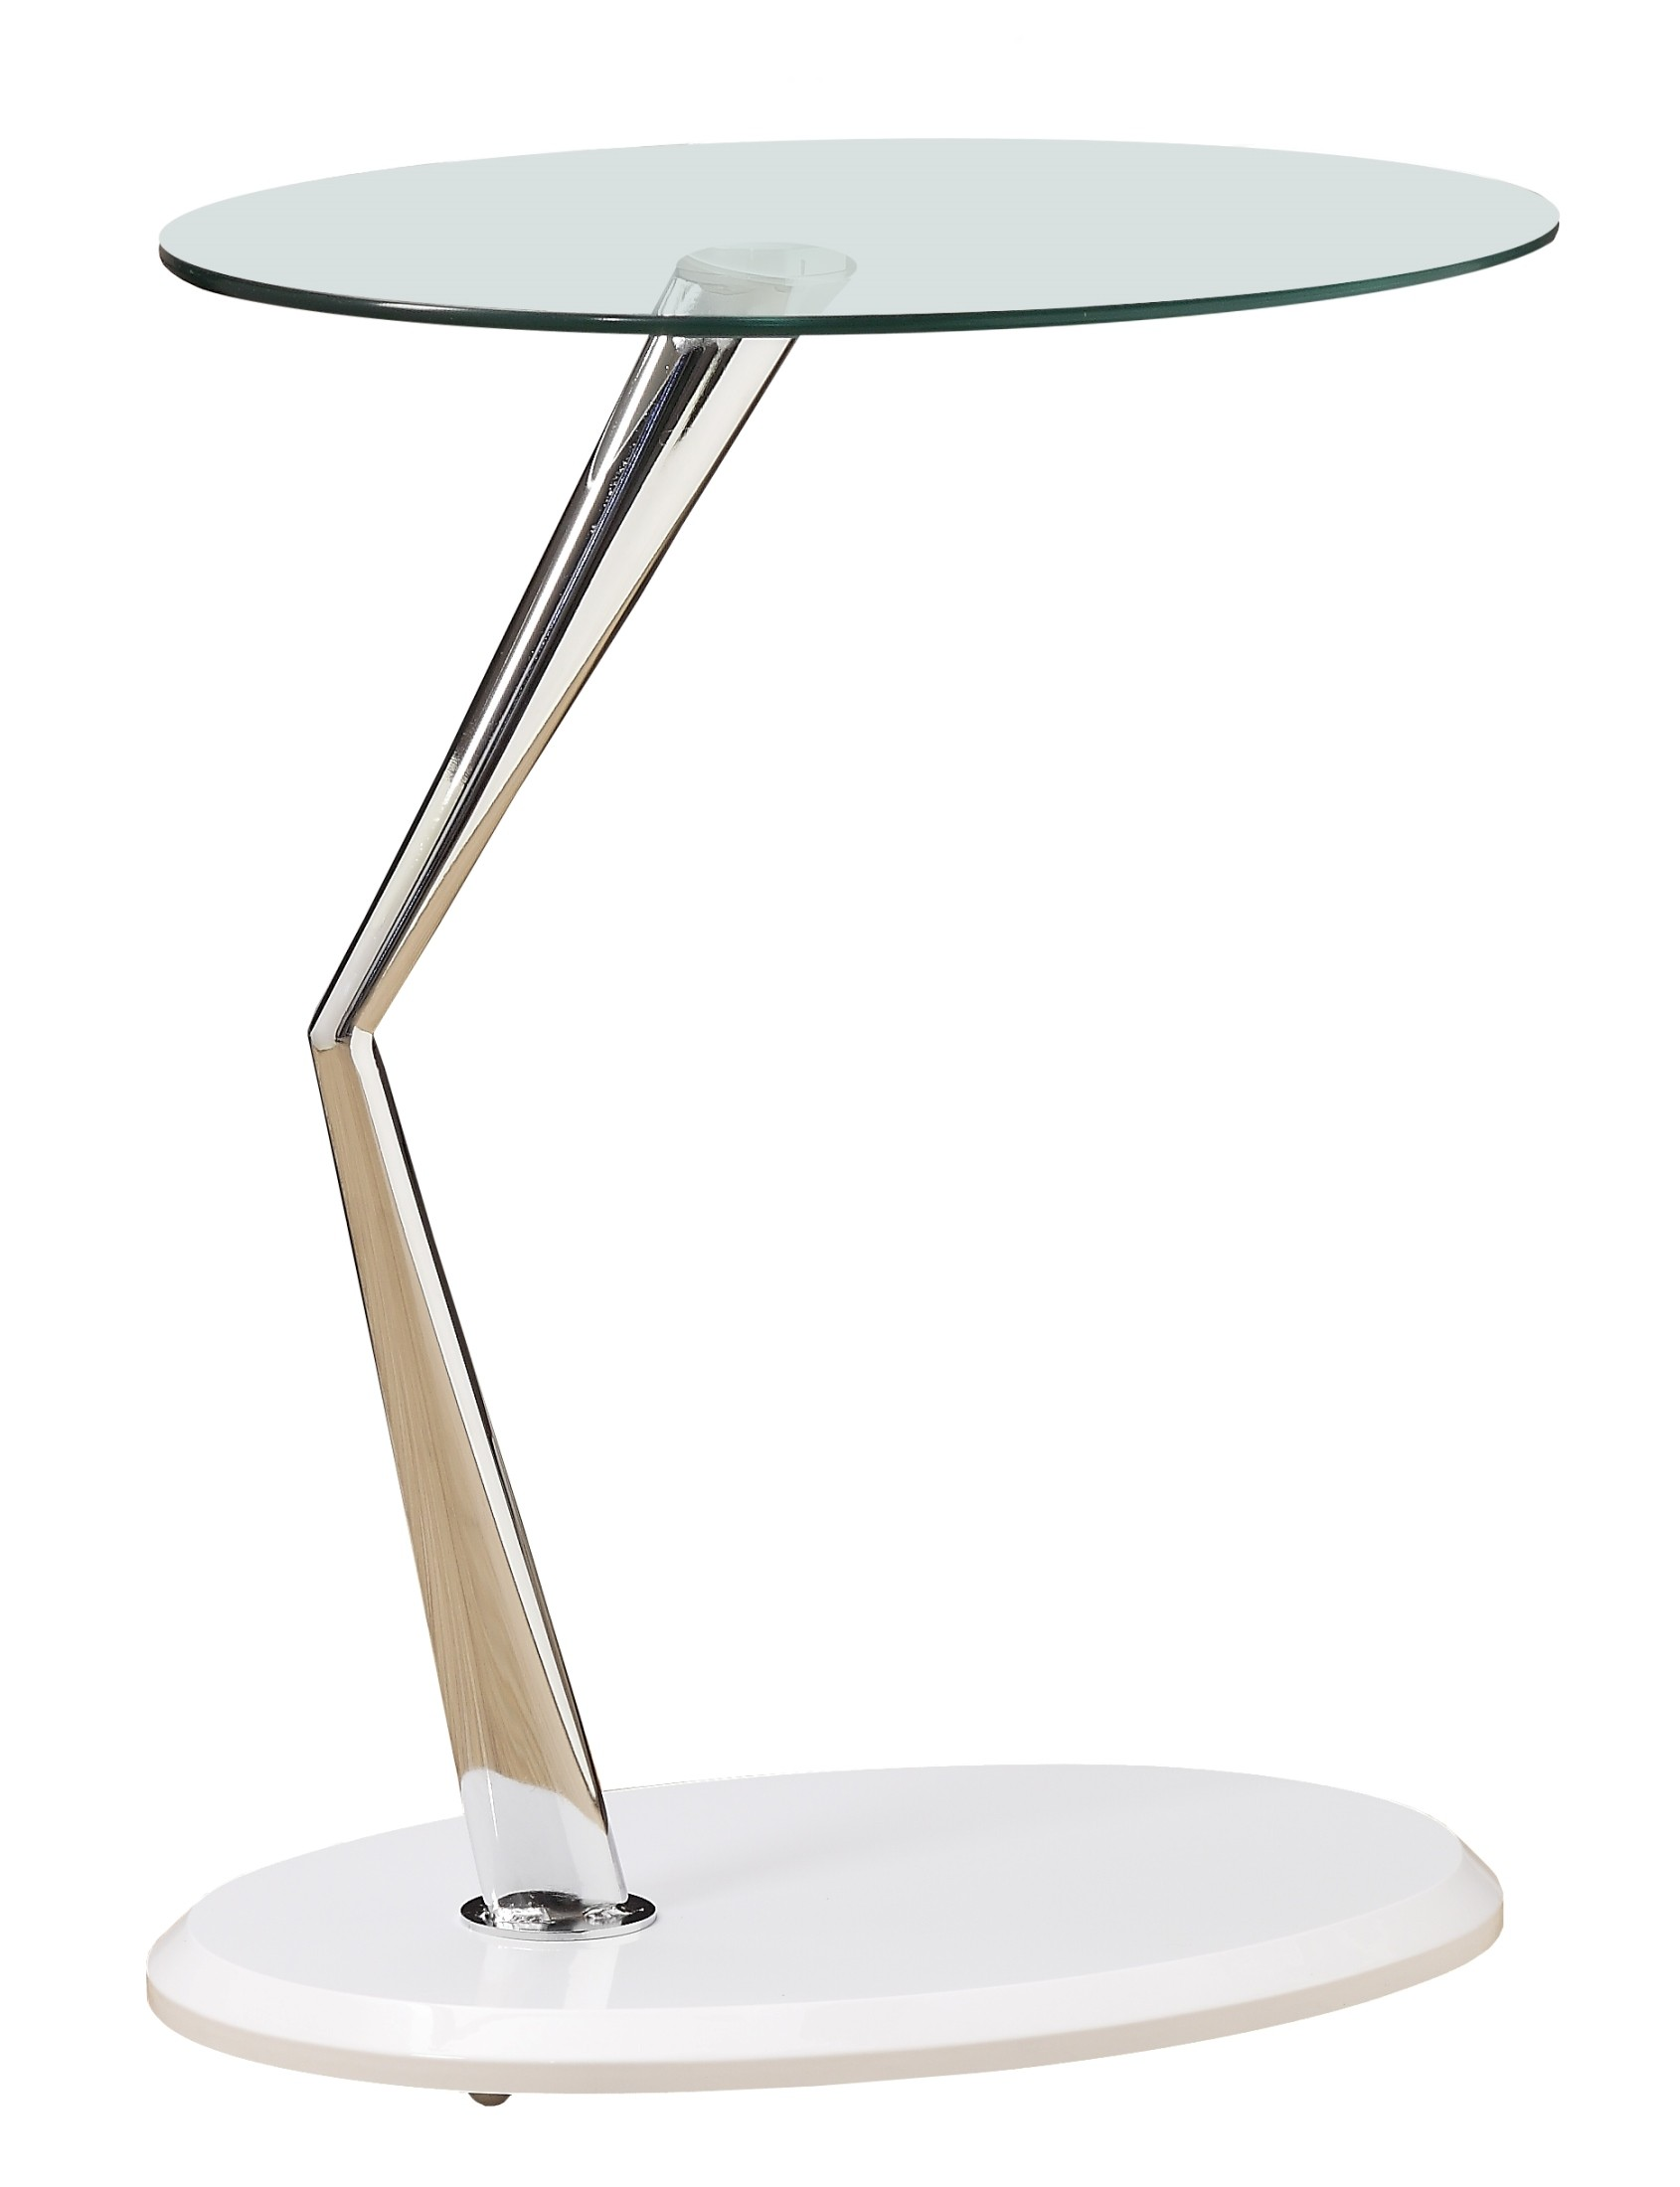 glossy white chrome metal accent table from monarch outdoor small skinny couch electric drum set inch round cover pier one side umbrella and stand corner bench dining lamps